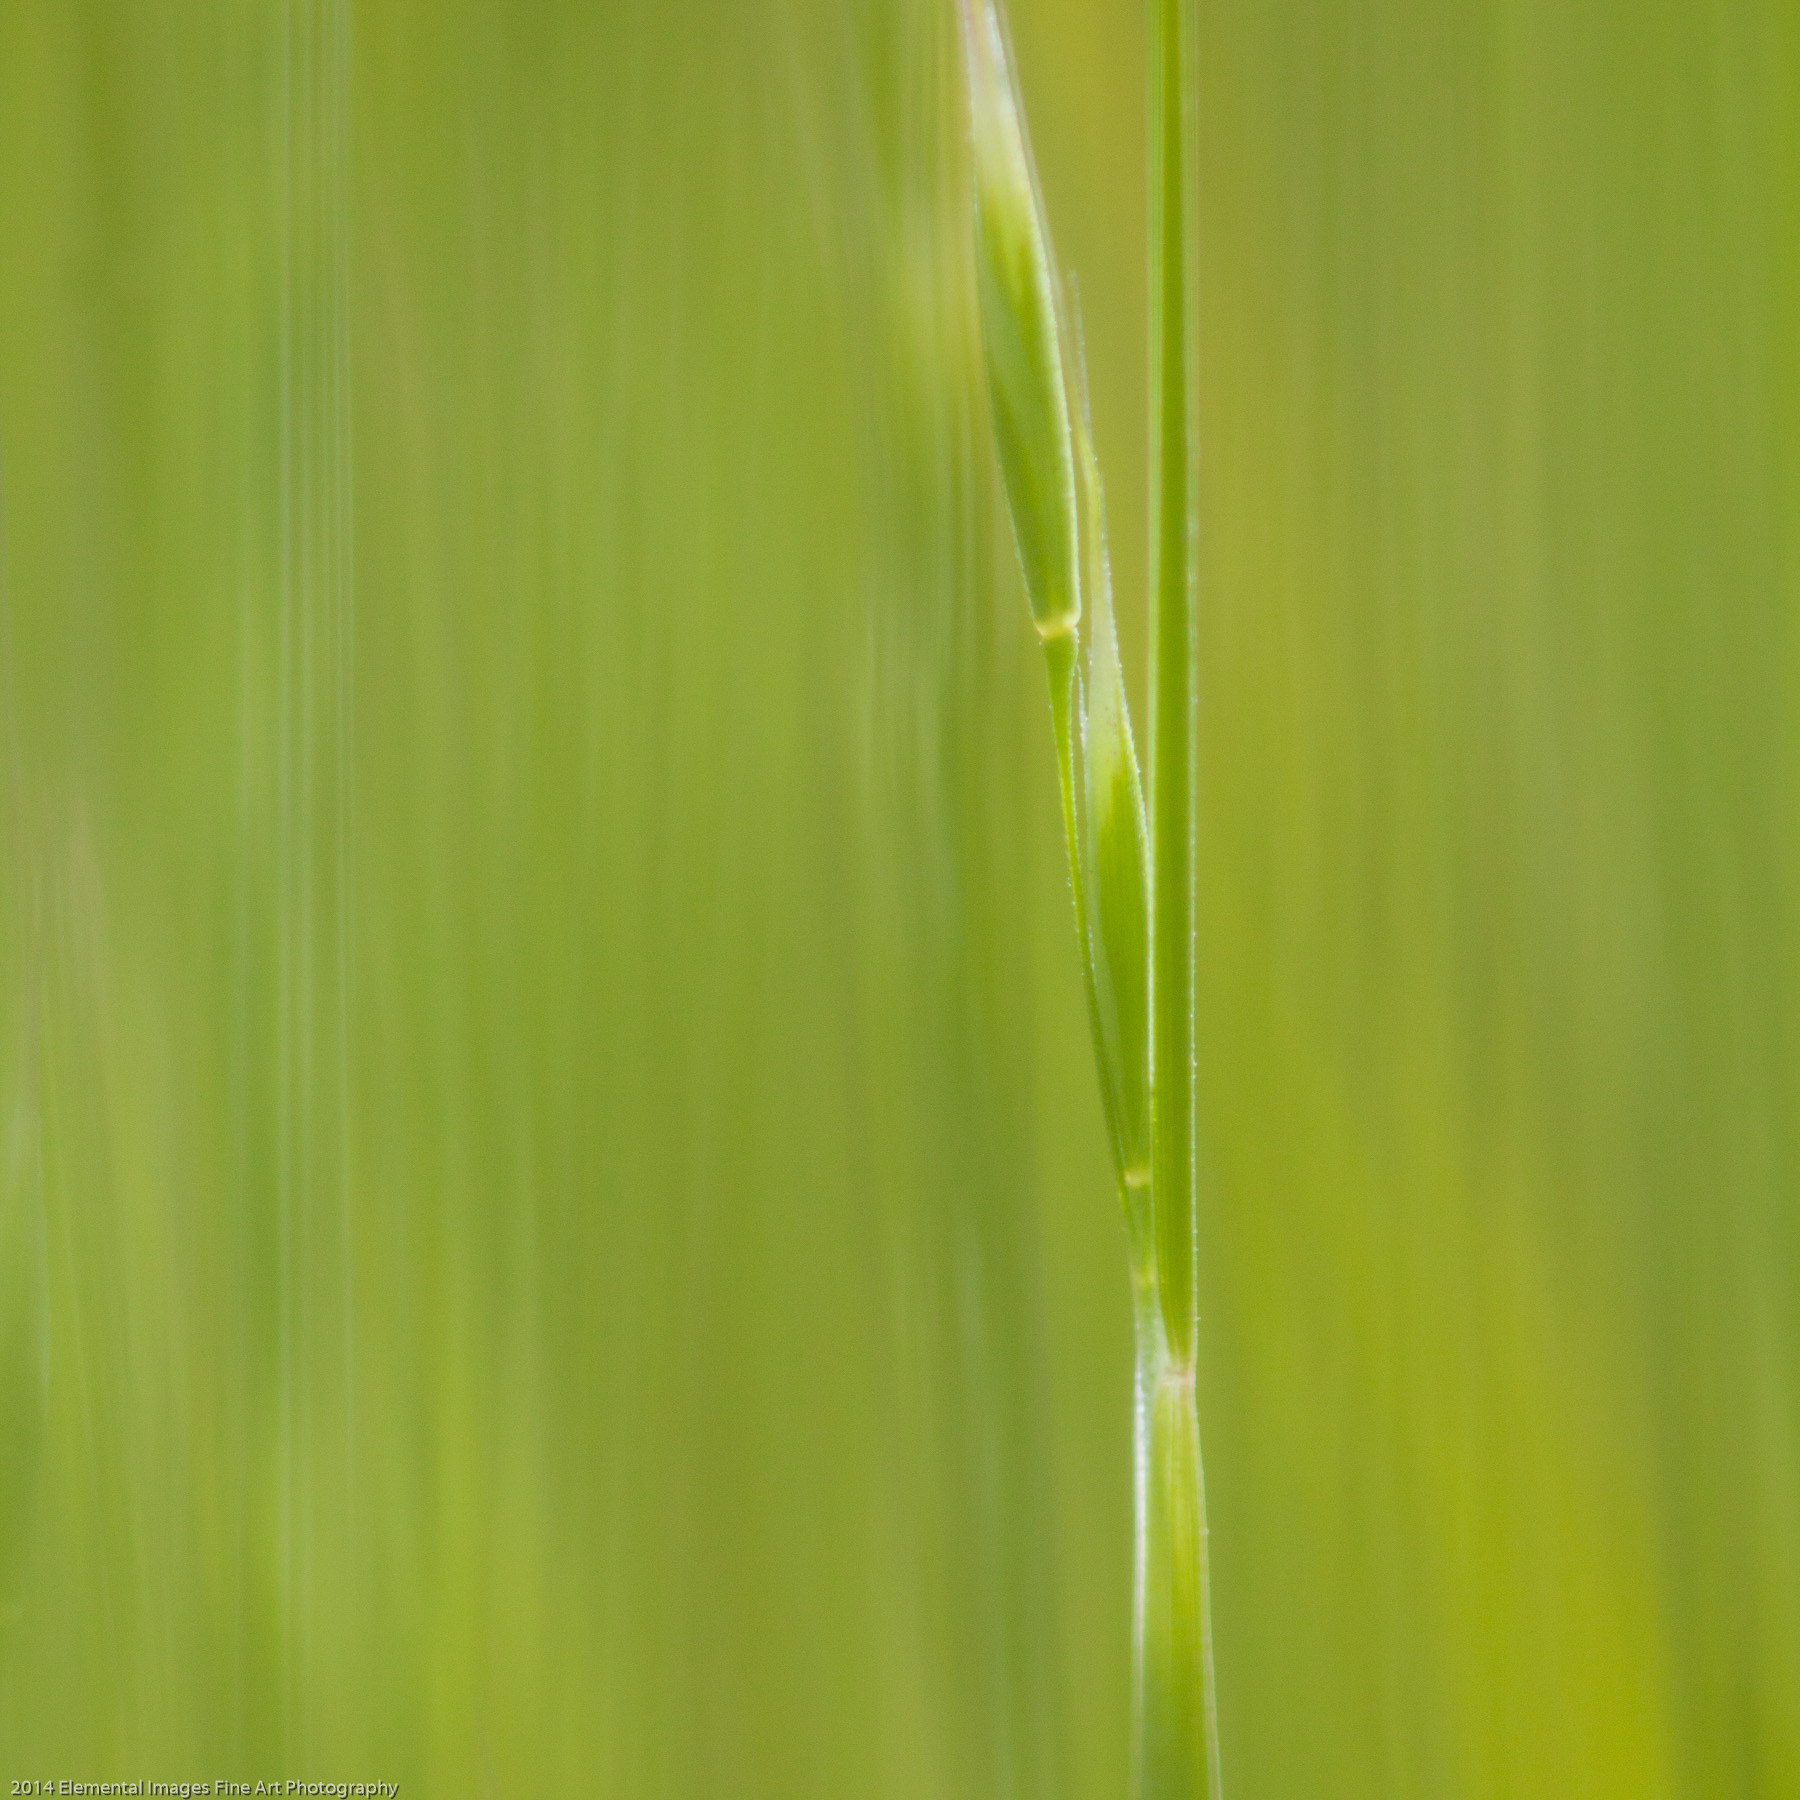 Grasses CXXXIII | The Palouse | WA | USA - © 2014 Elemental Images Fine Art Photography - All Rights Reserved Worldwide